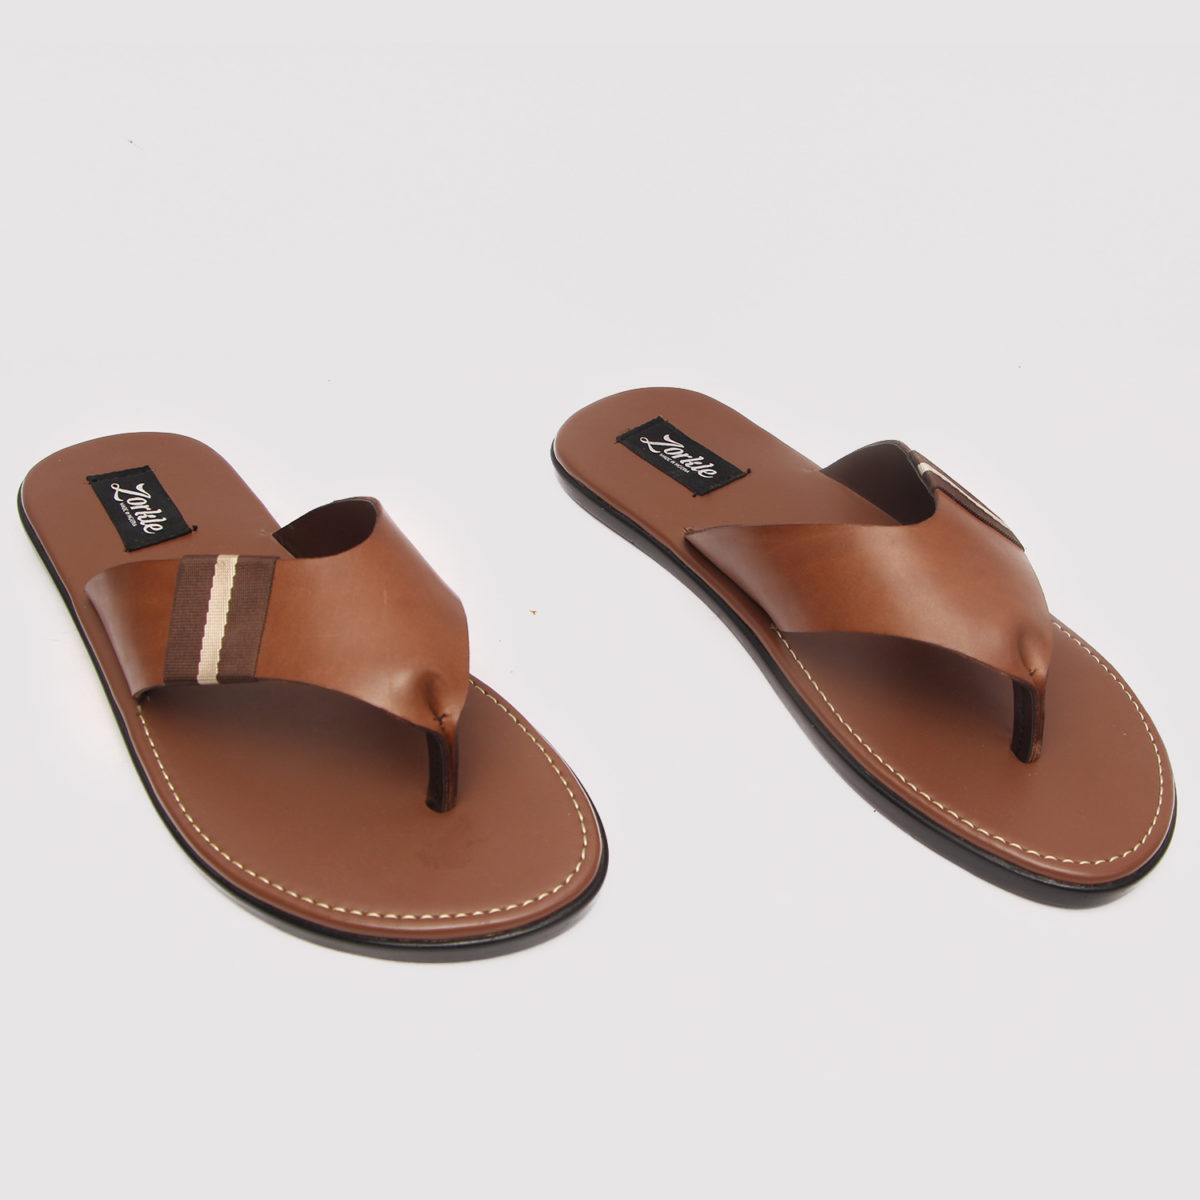 Baloma Slippers Brown Leather ZMP075 - Zorkles Shoes